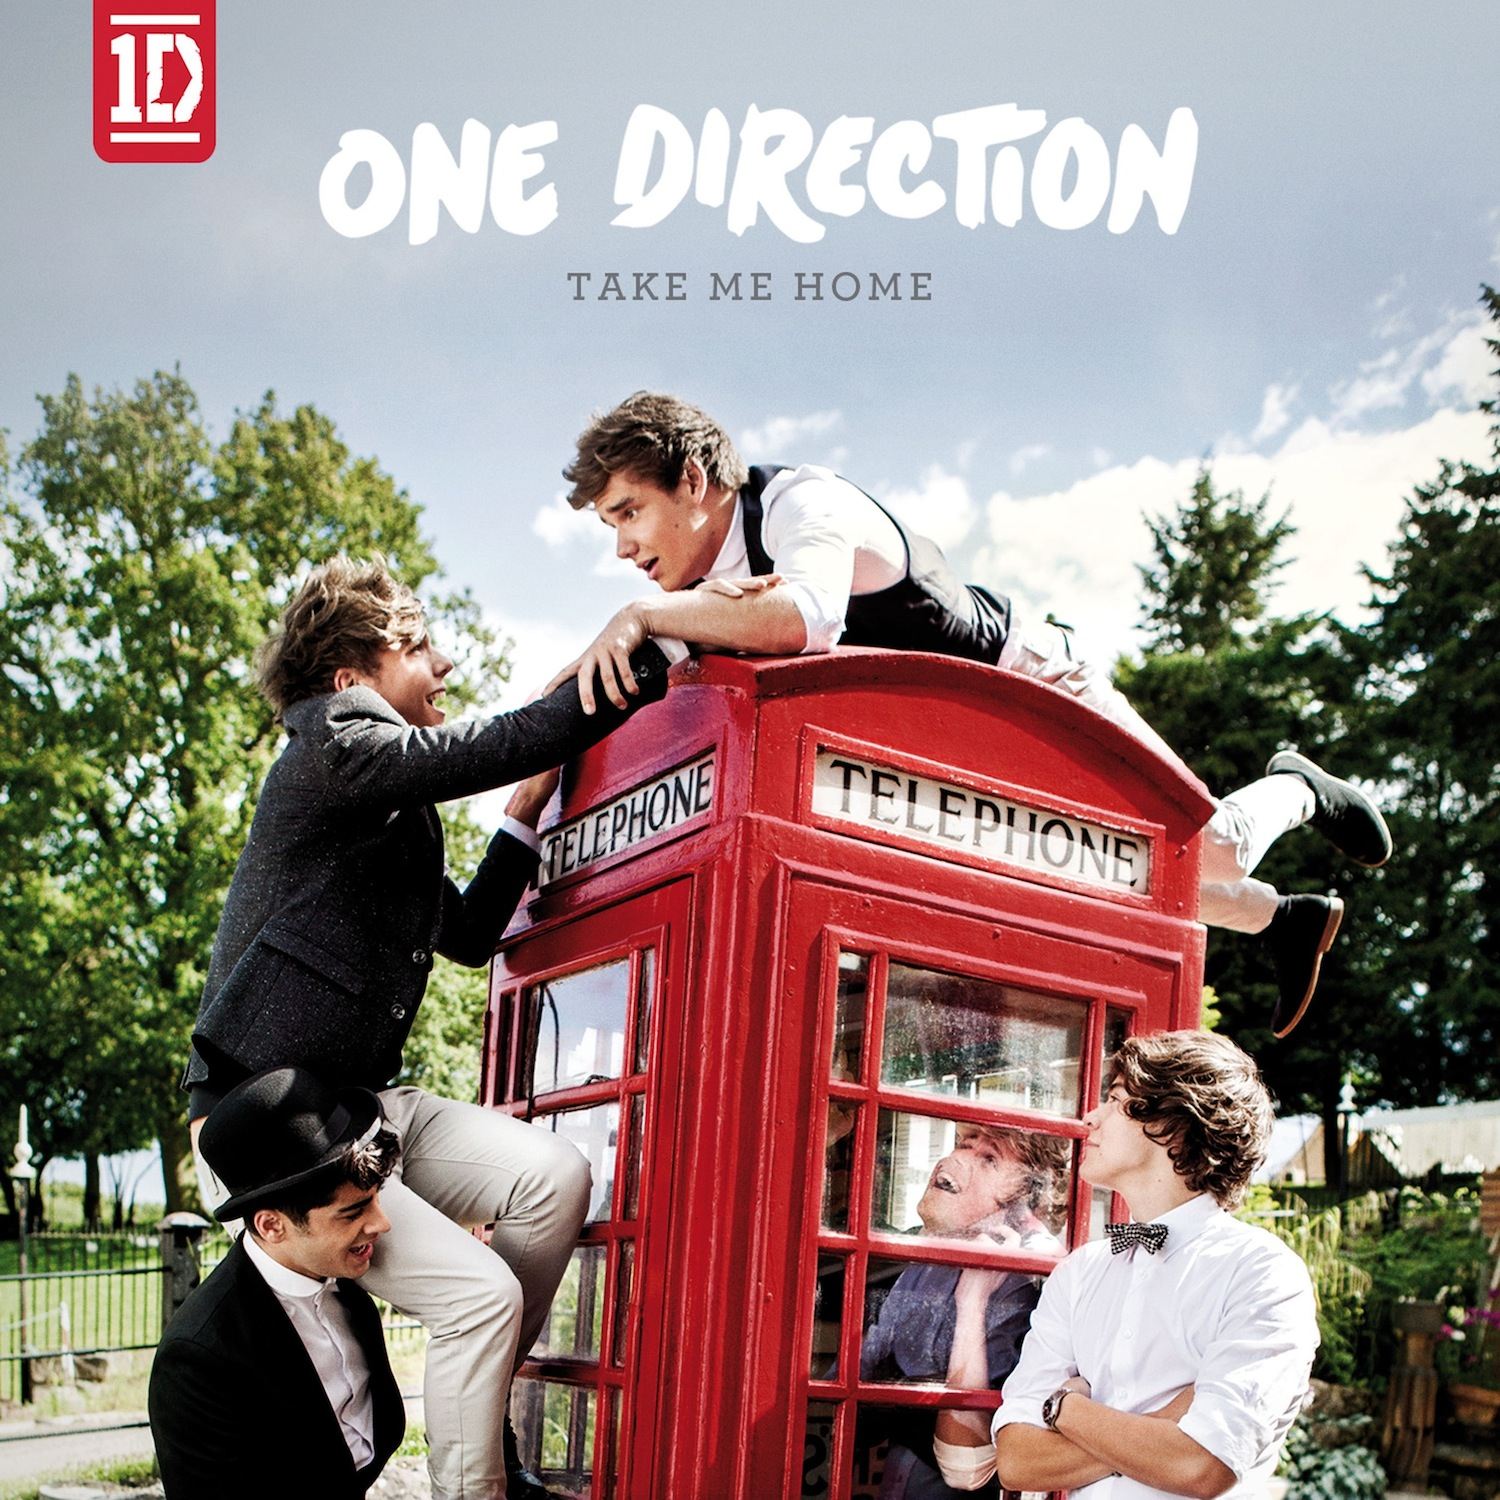 http://3.bp.blogspot.com/-oD9jKO6hahw/UKlFgufoQ1I/AAAAAAAADUo/ZFZguHM5dRA/s1600/One+Direction+Take+Me+Home.jpeg